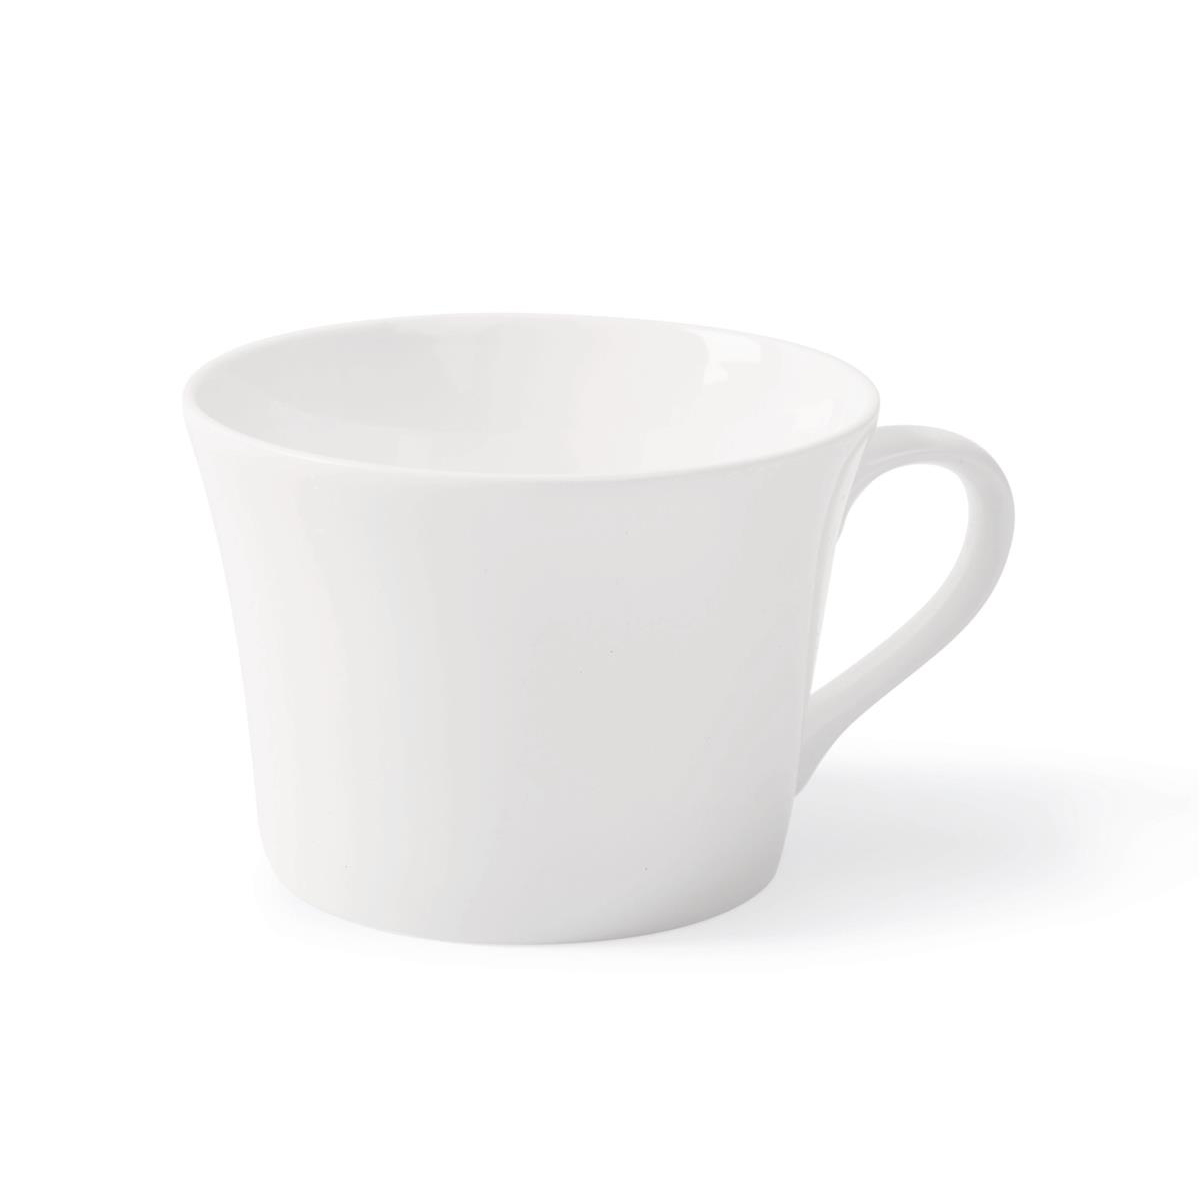 5 Star Facilities Fine Bone China Teacup White Pack 6